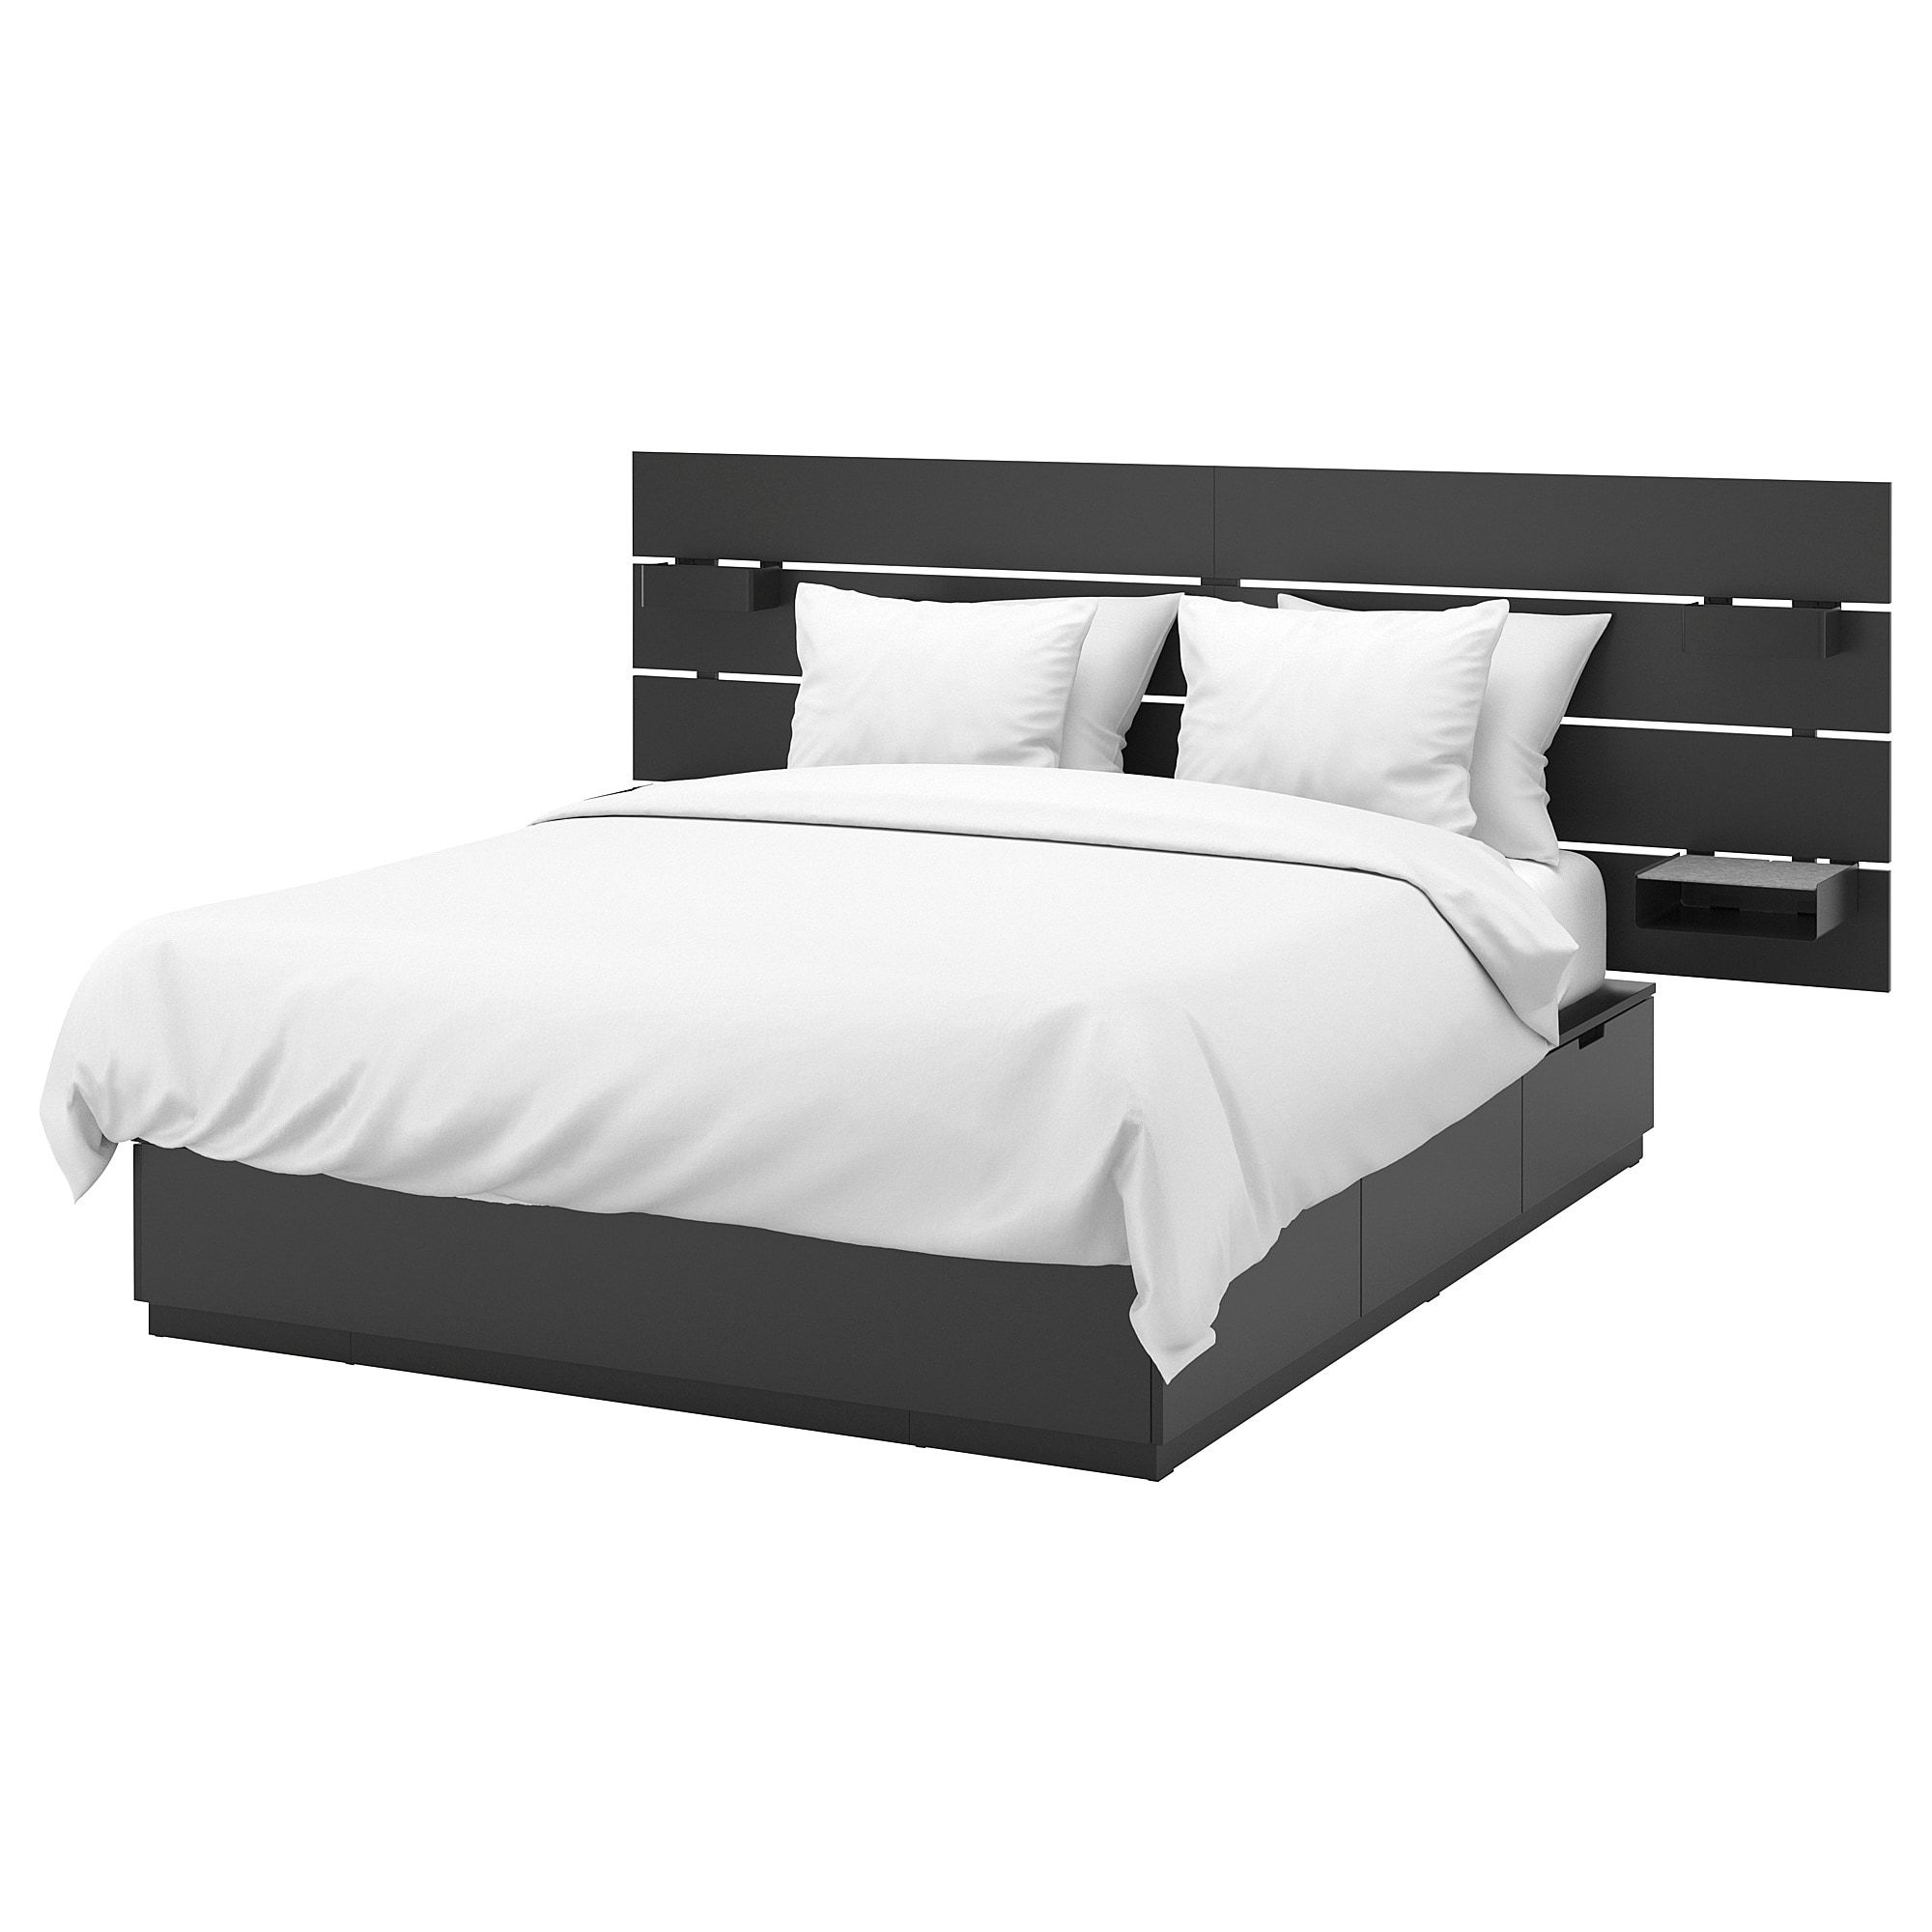 Nordli Bed With Headboard And Storage Anthracite Queen Ikea Headboards For Beds Bed Frame With Storage Ikea Nordli